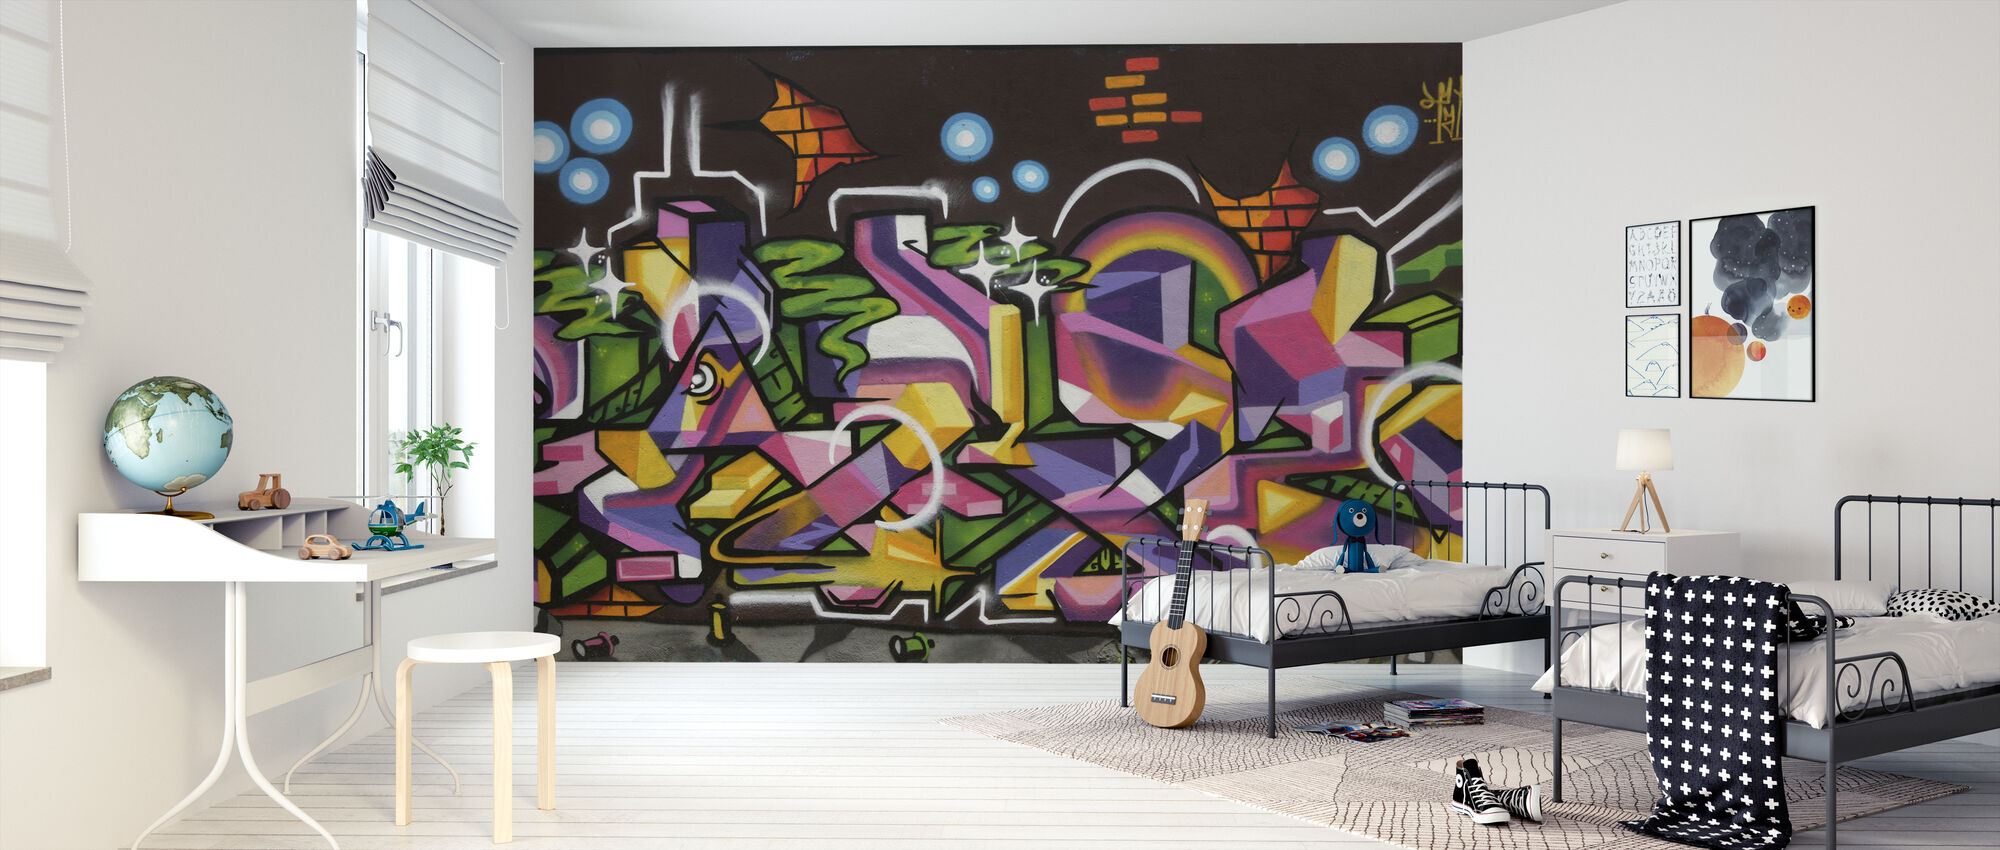 Teenage Graffiti - Wallpaper - Kids Room